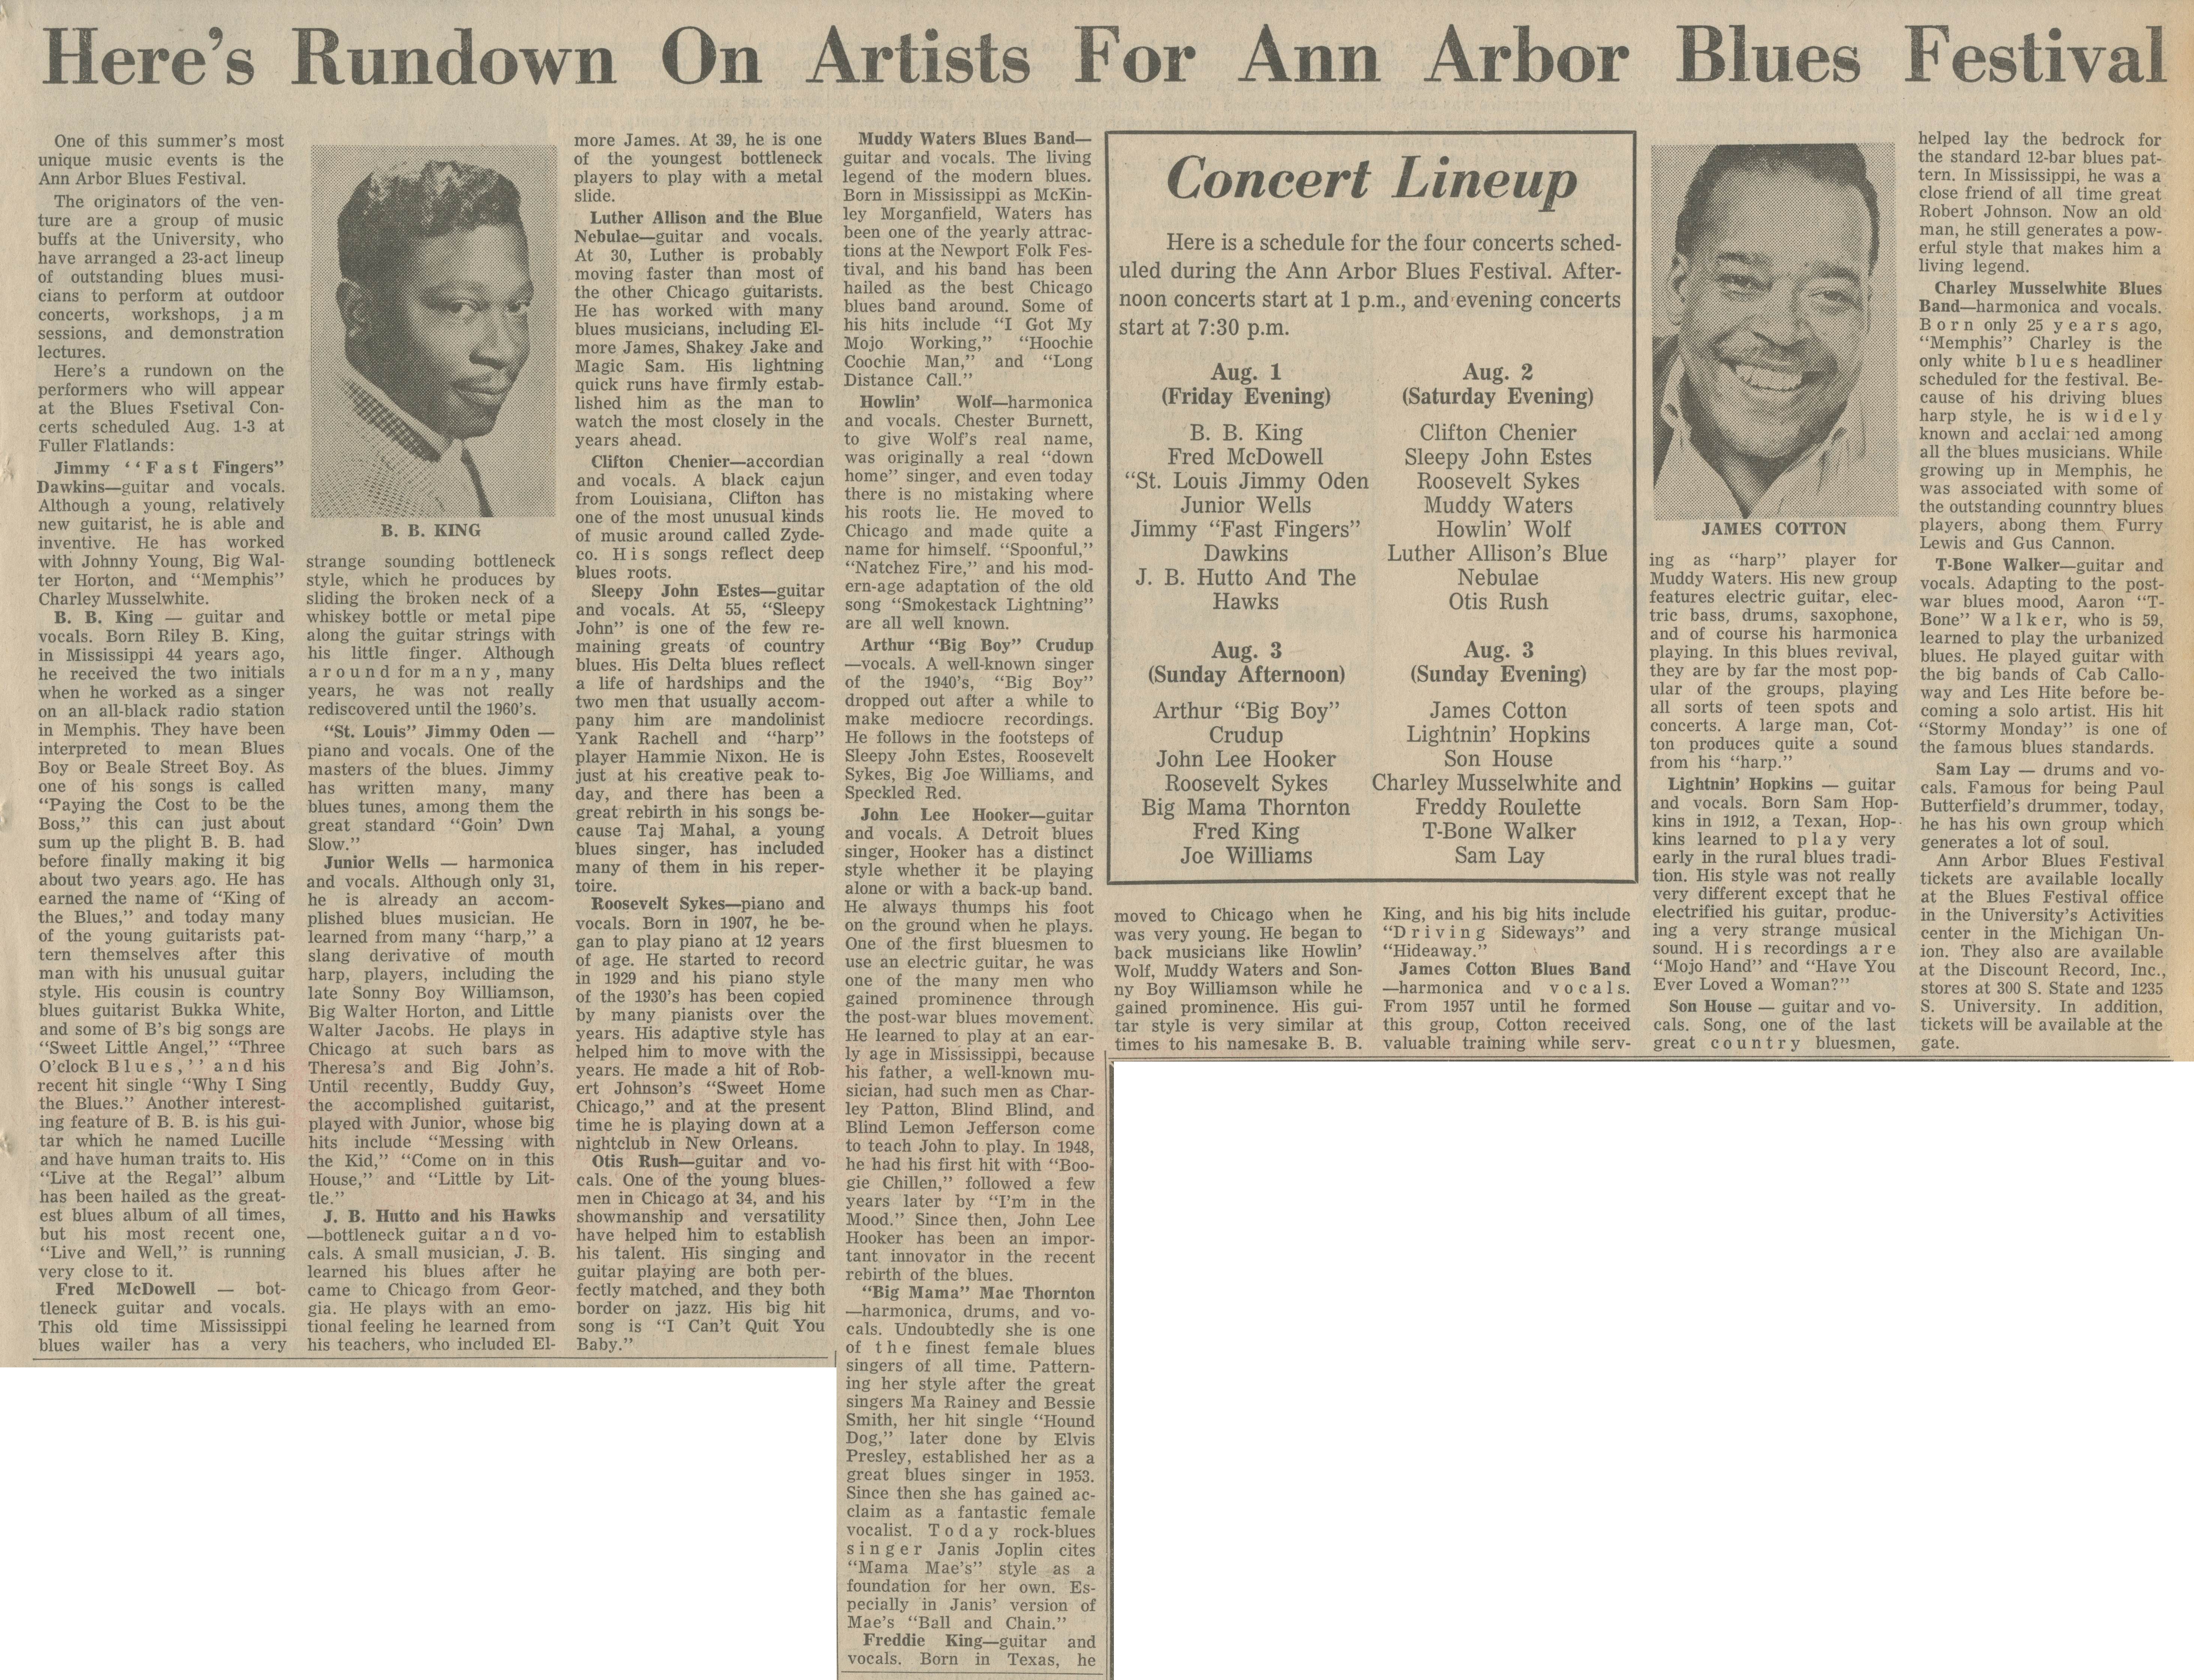 Here's Rundown On Artists For Ann Arbor Blues Festival image